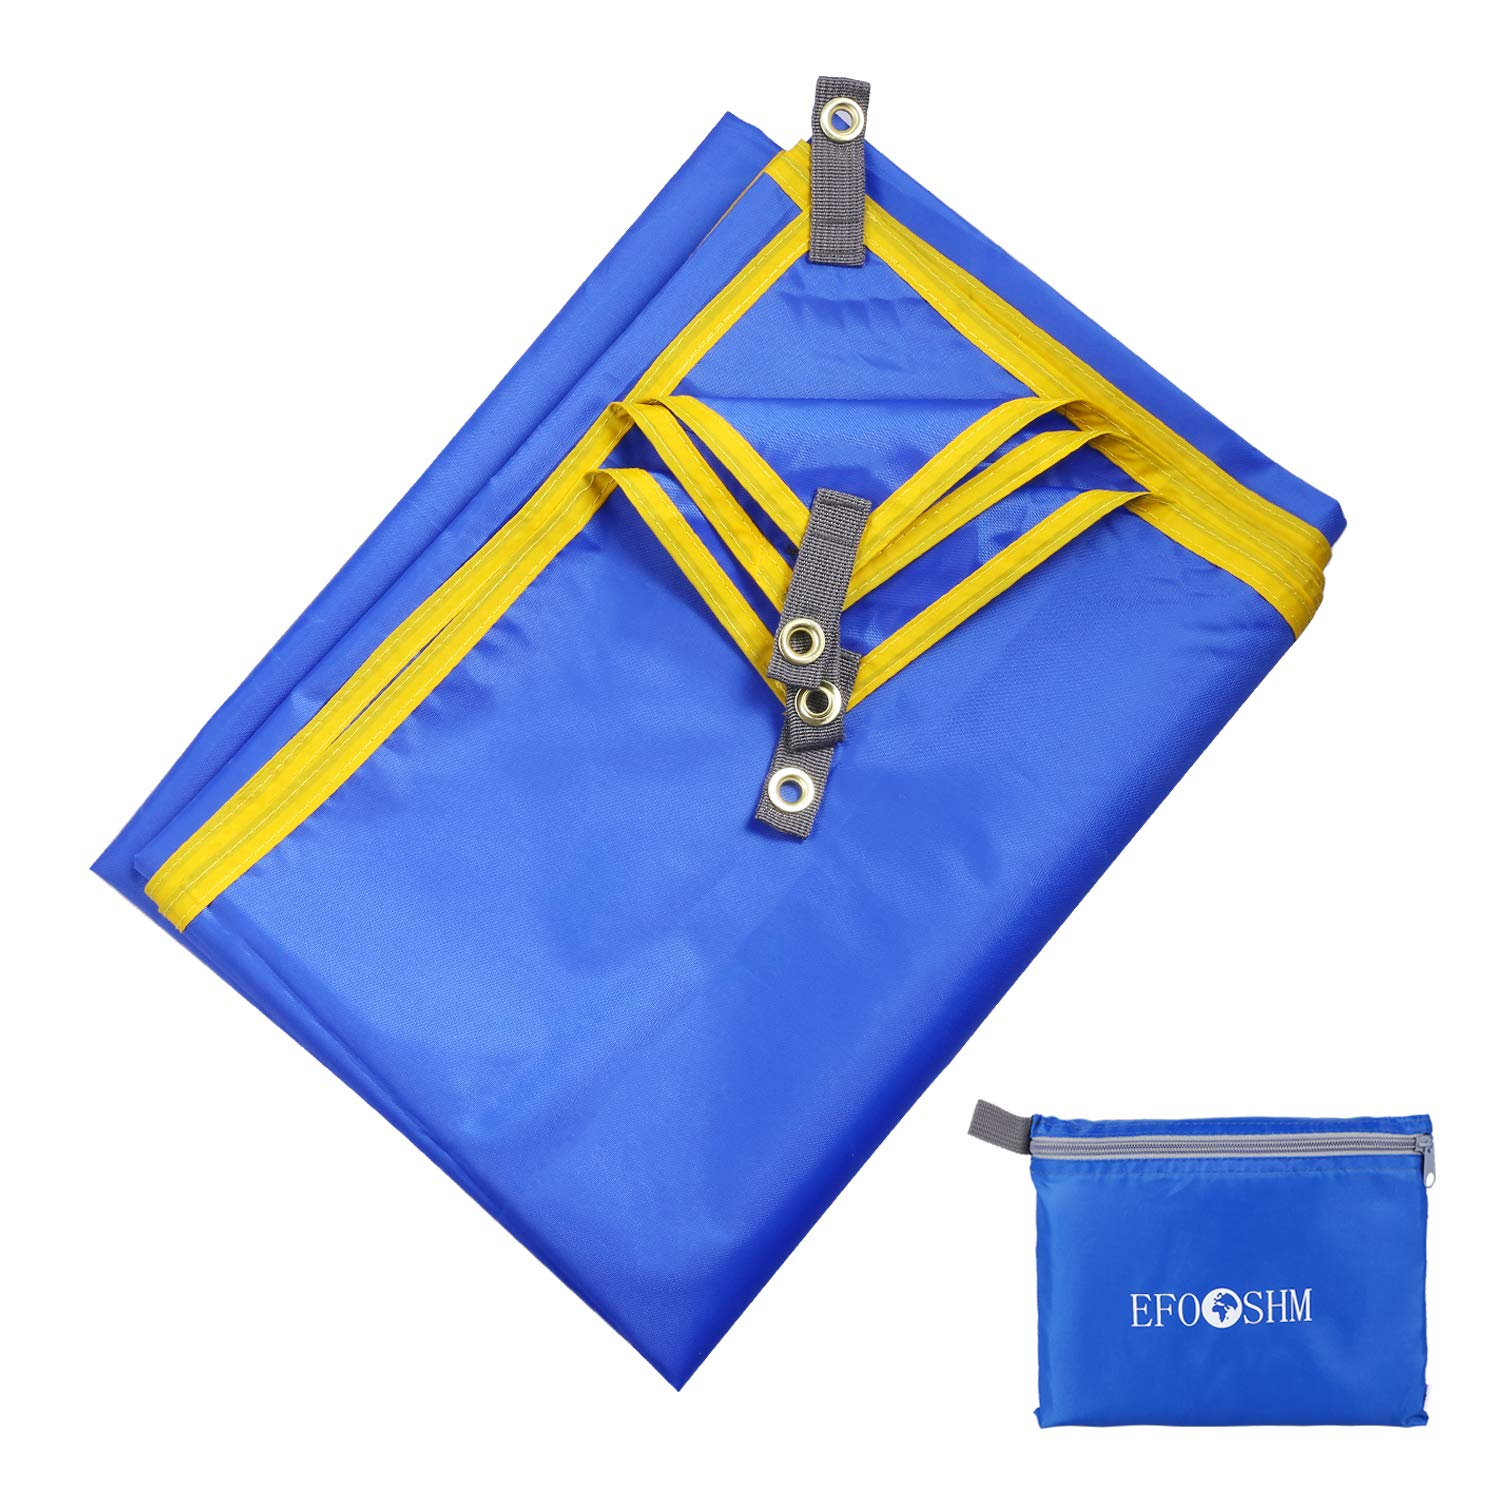 Durable Tarp with Portable Pouch Hiking and Music Festivals Huge Ground Cover- Sand Proof Picnic Mat for Travel EFOSHM Outdoor Beach Blanket Camping